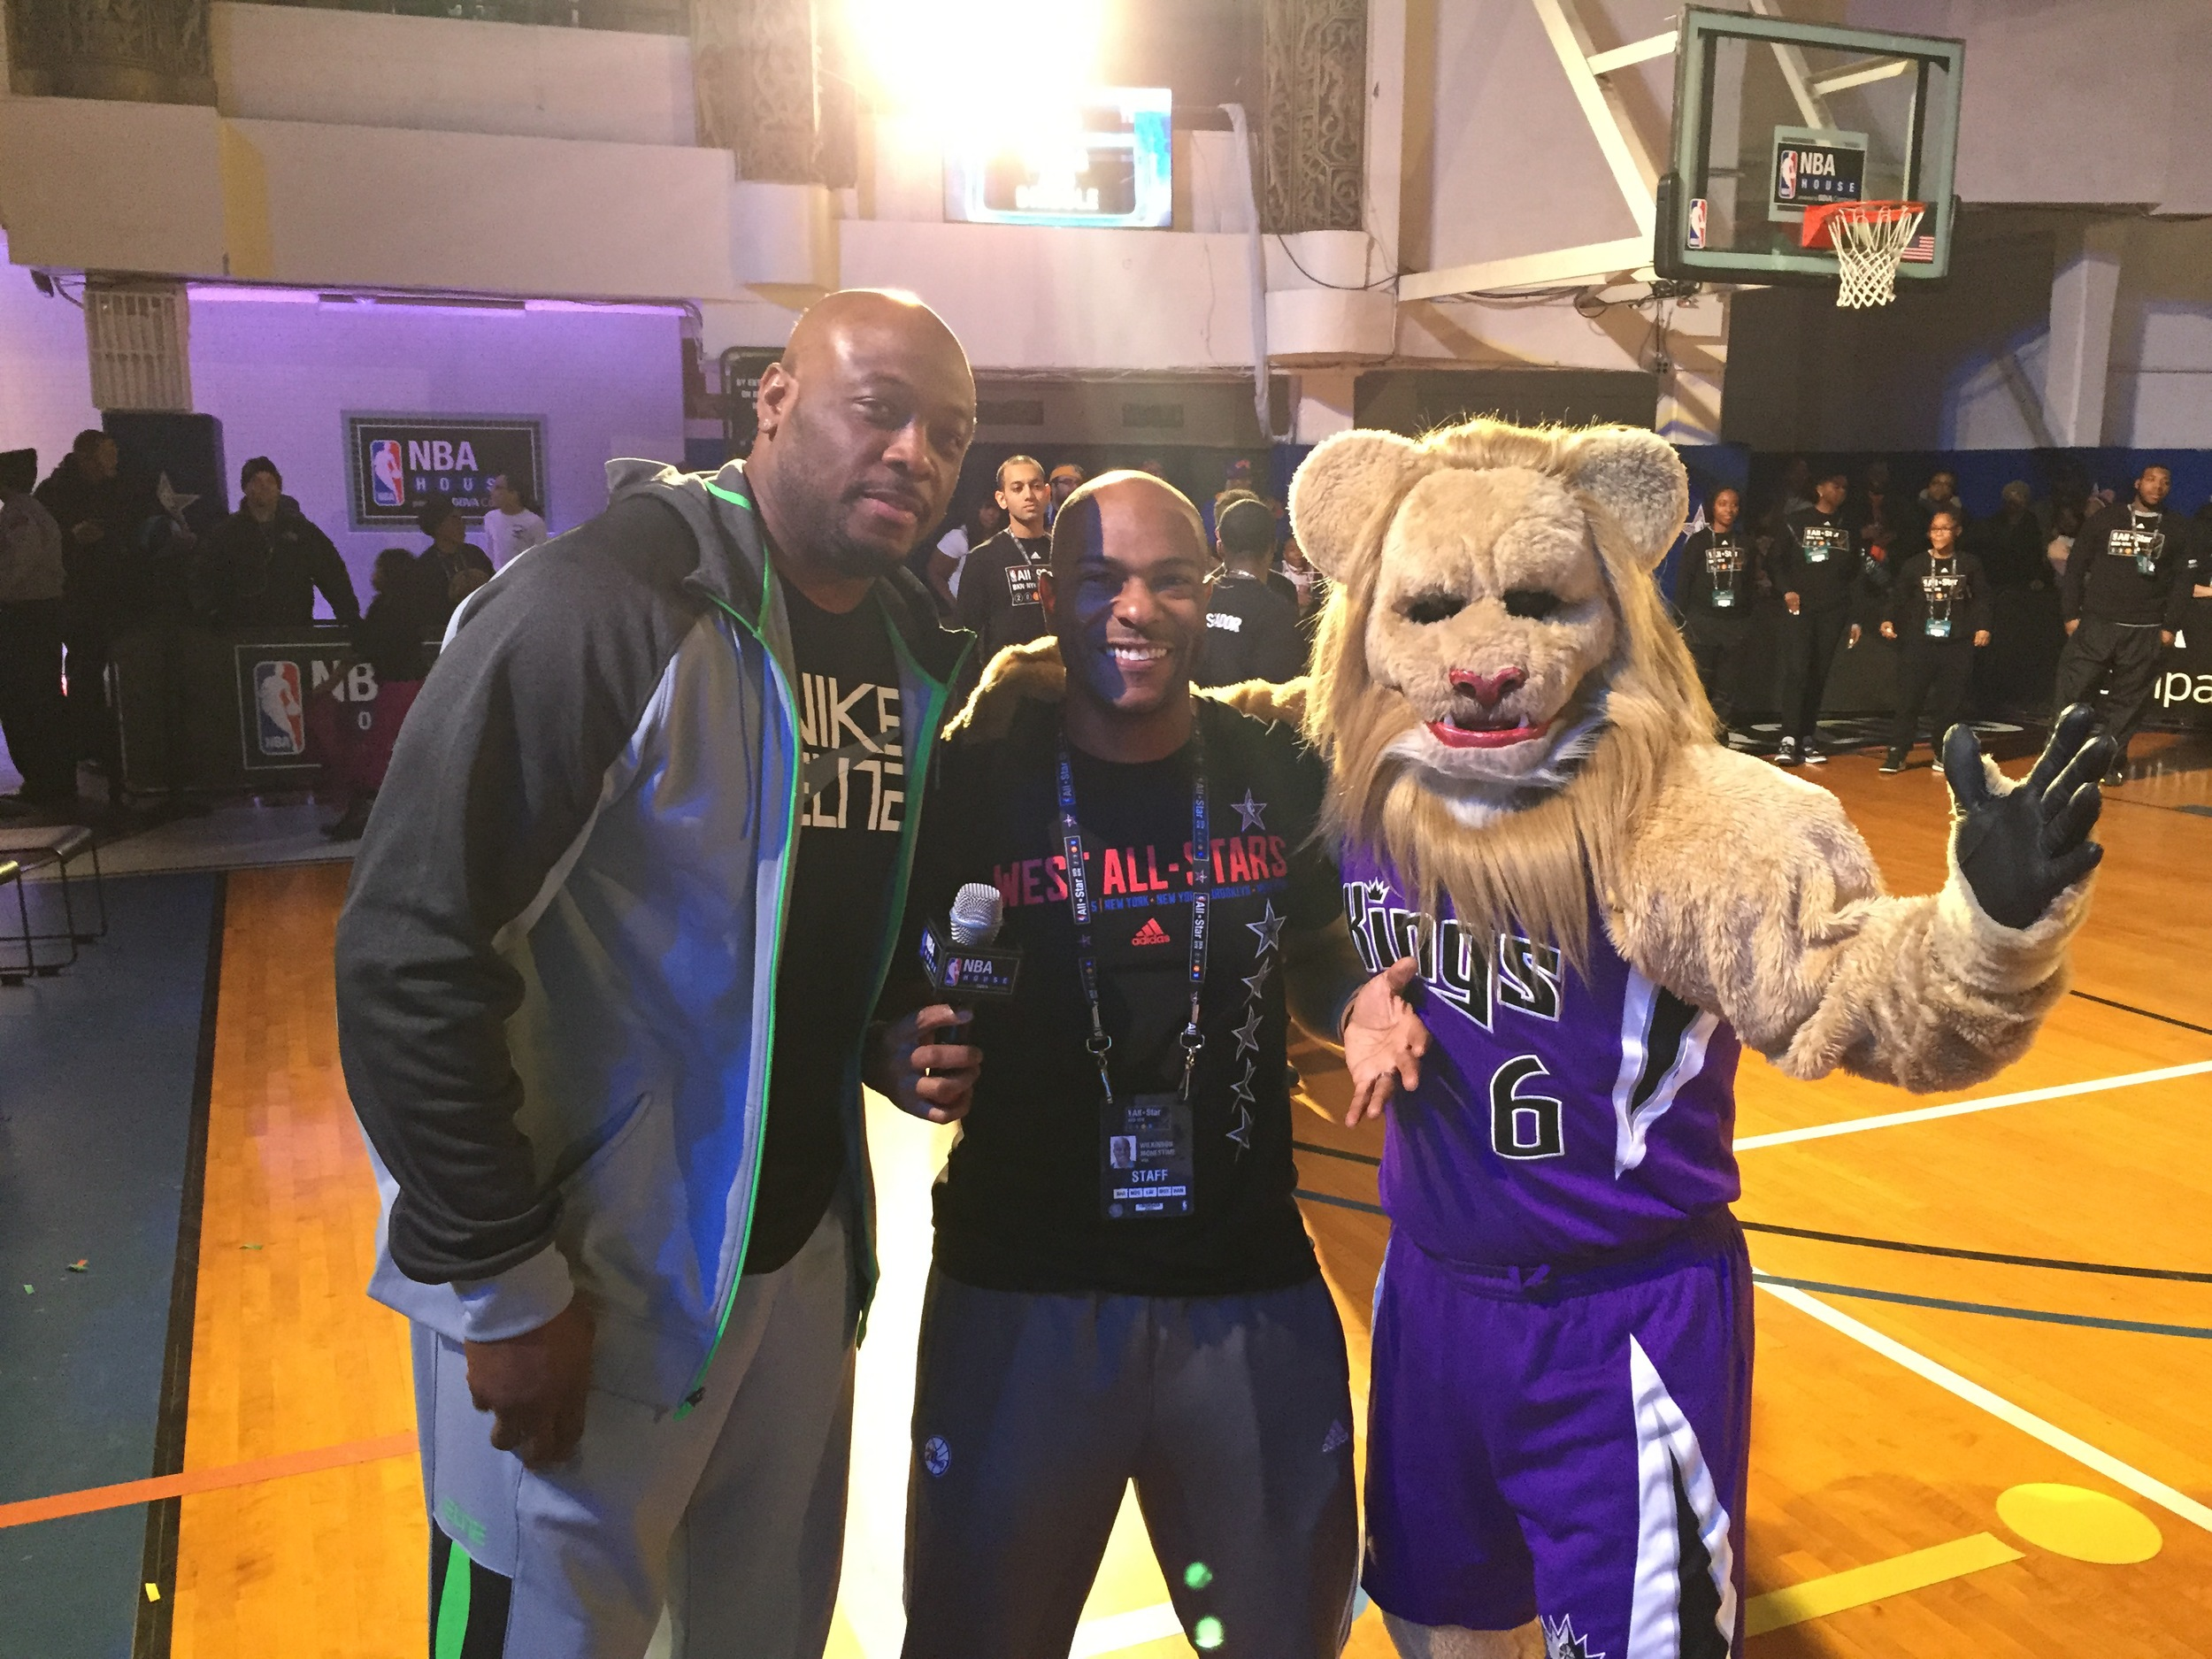 NBA Legend and mascot appearances were just a fraction of the action at NBA House. Here, event emcee, Wil, poses with Kings mascot Slamson and Legend Mitch Richmond.